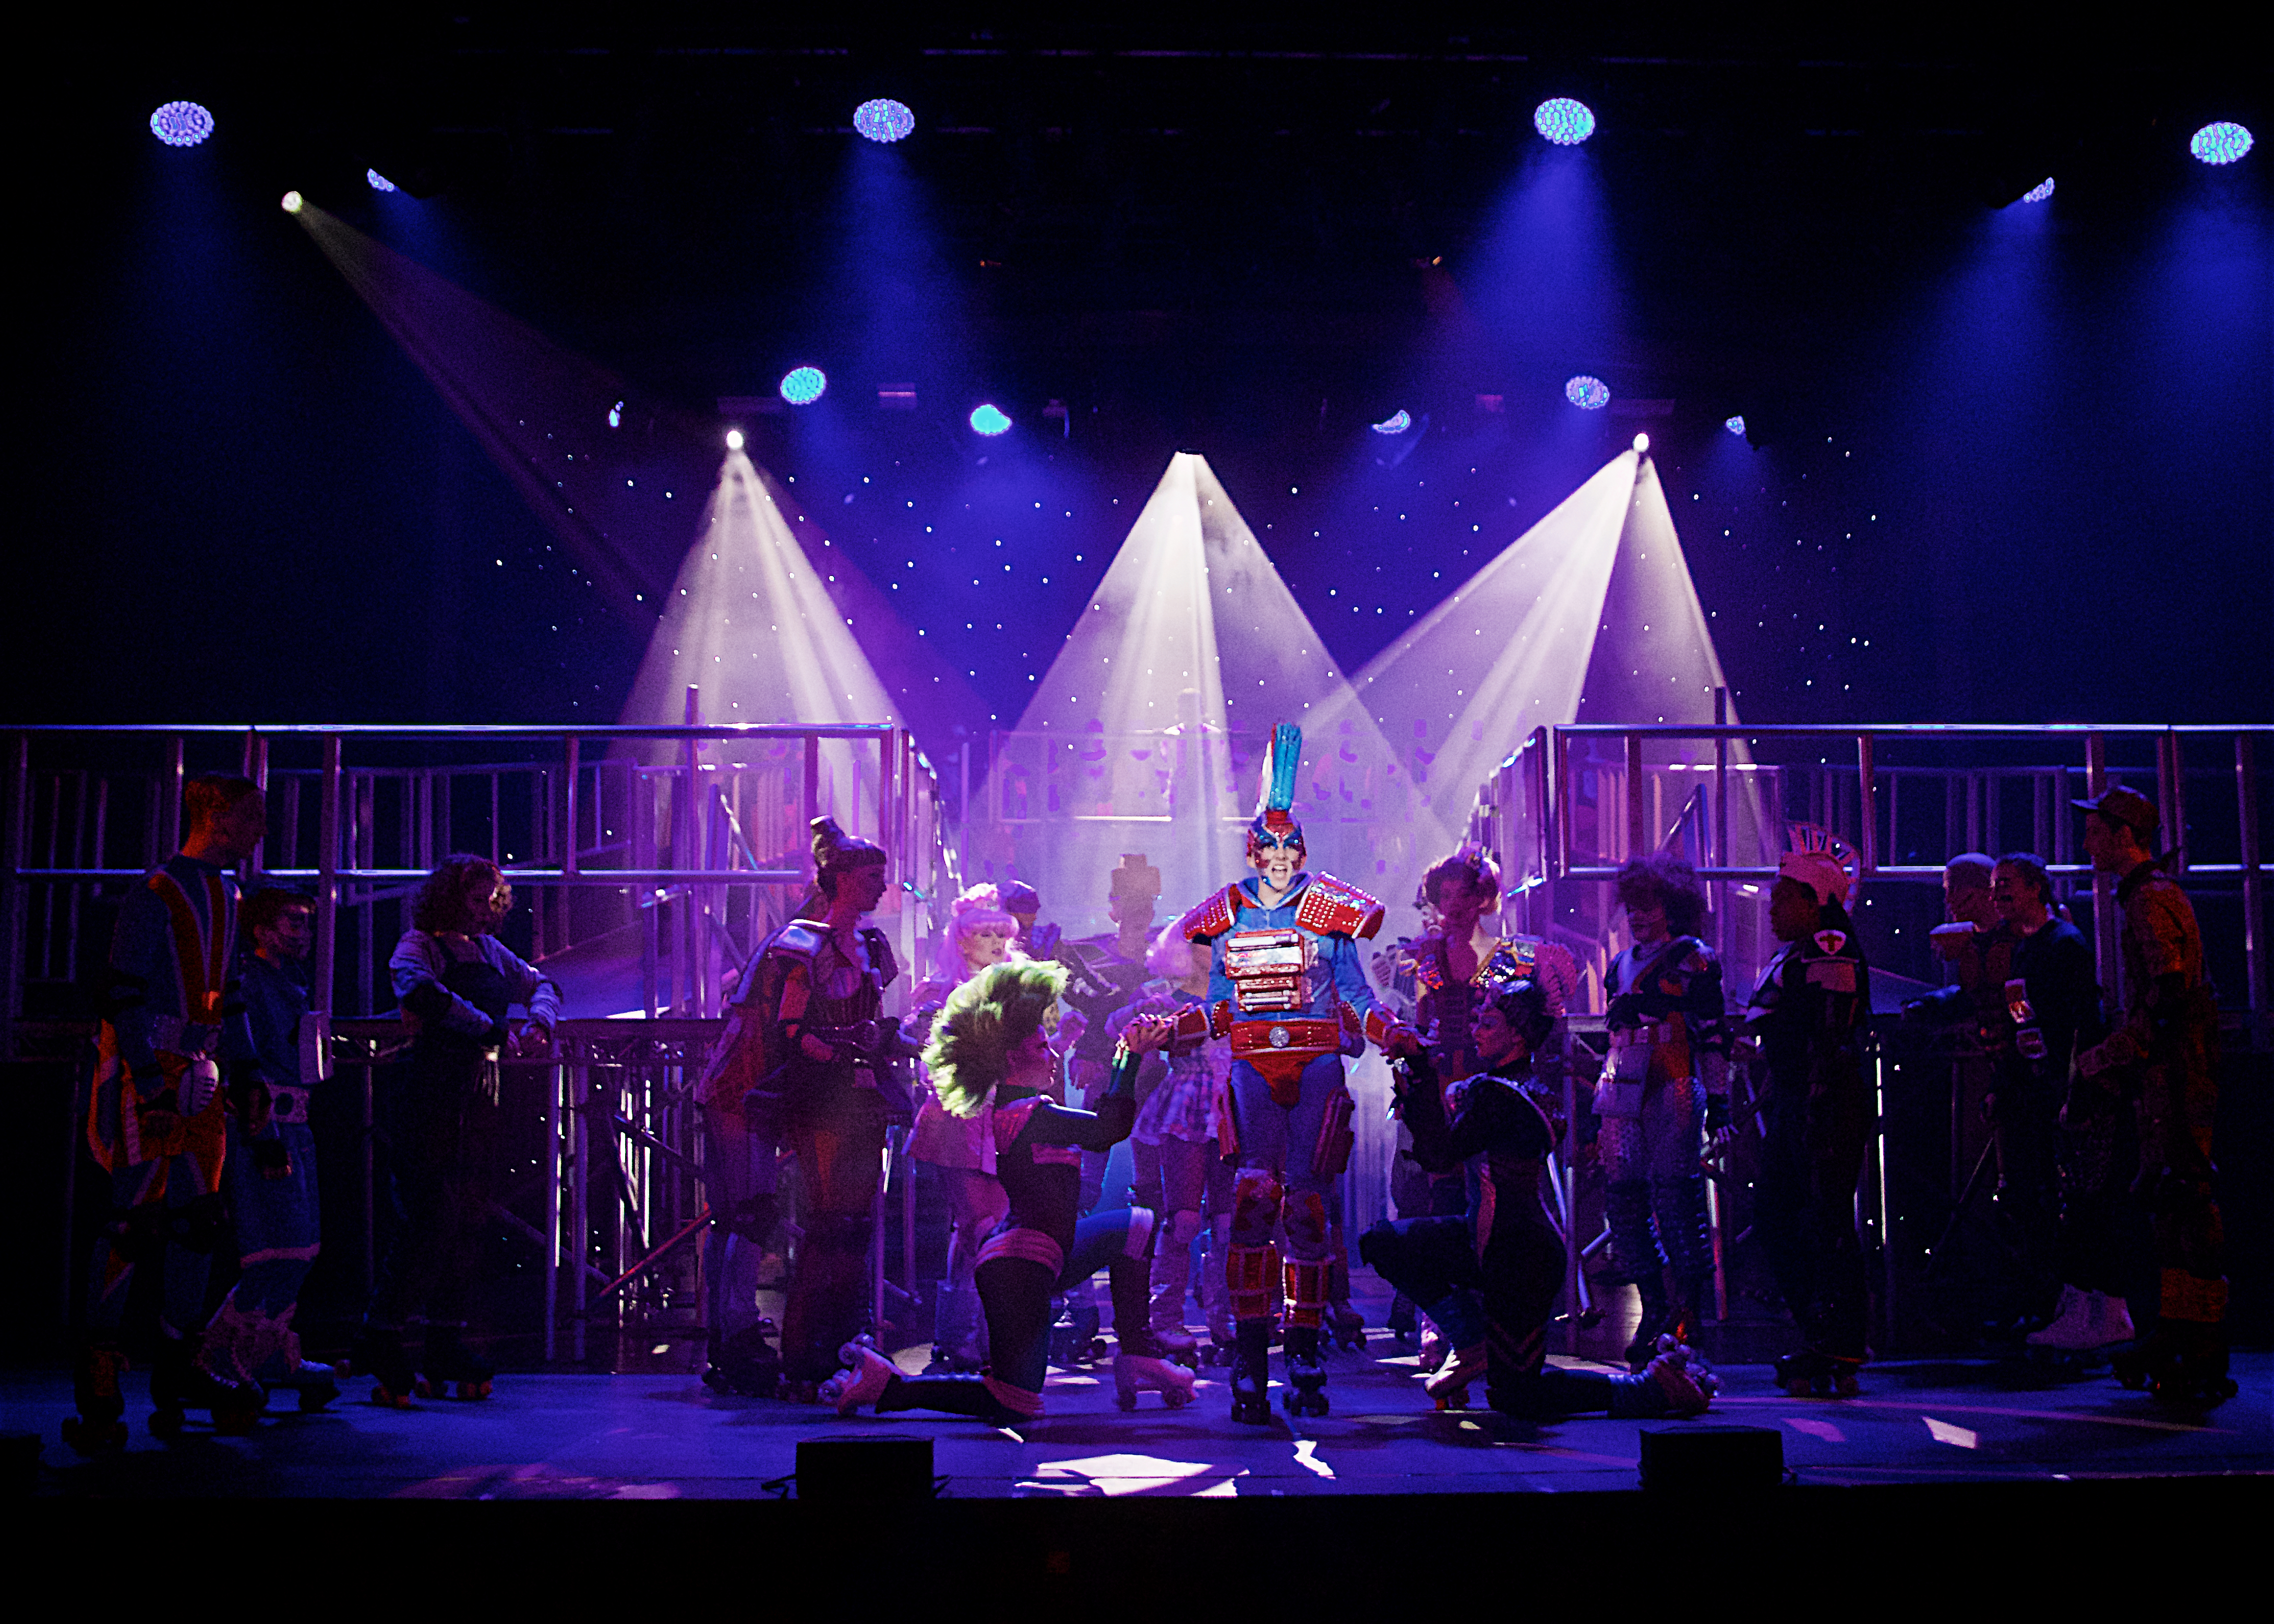 Starlight Express - Albany Theatre Coventry - Image © David Fawbert Photography